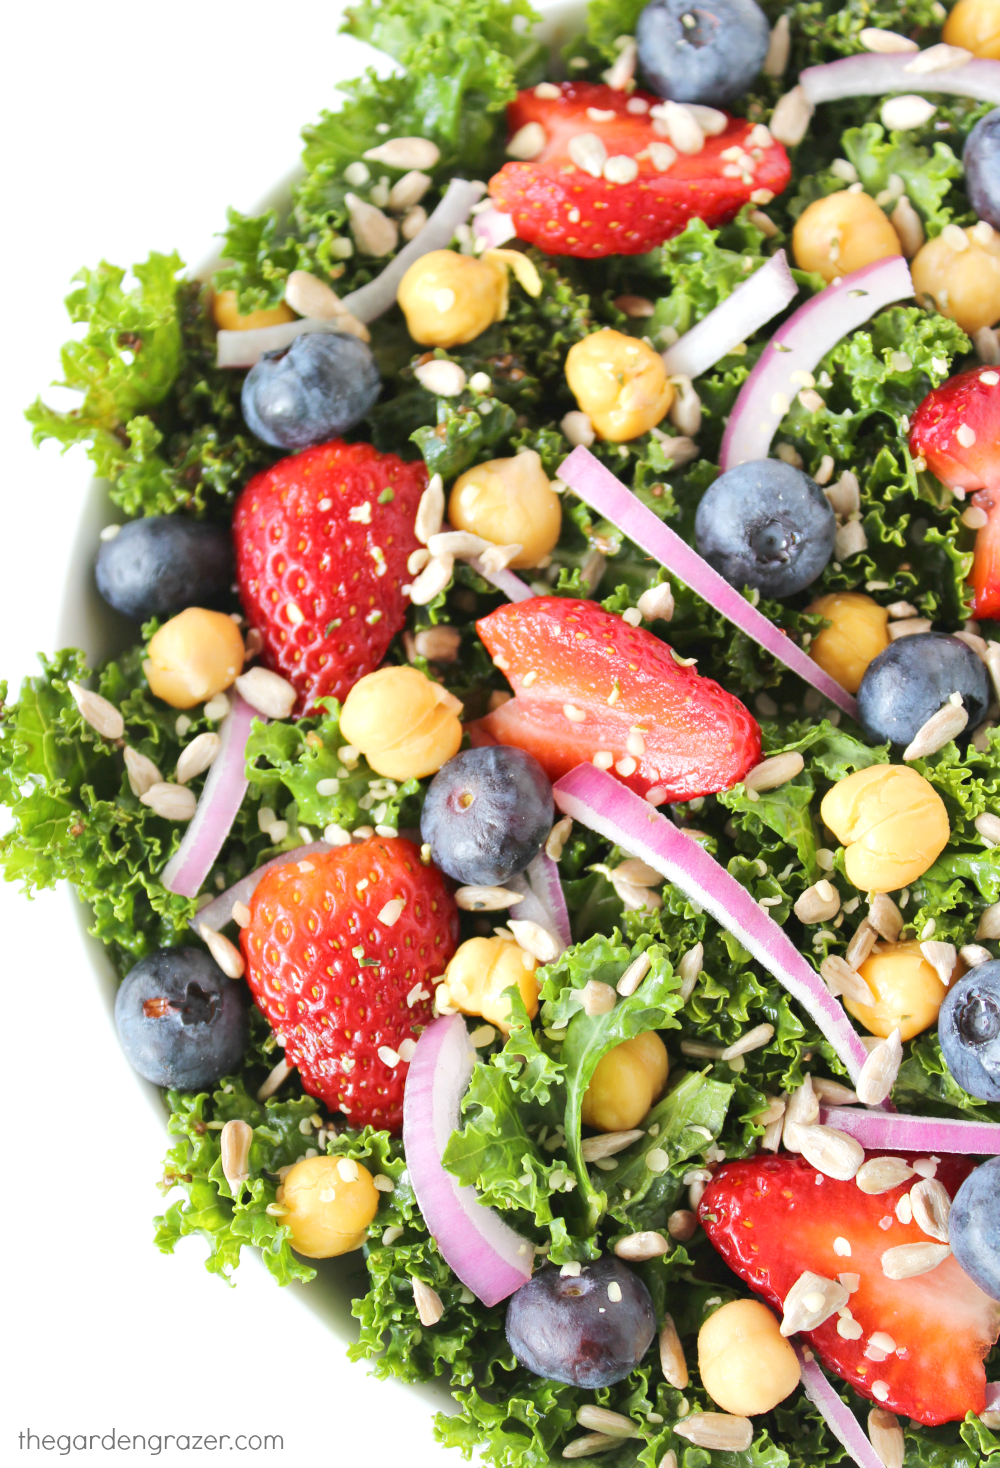 The Garden Grazer: Super Immunity Power Salad